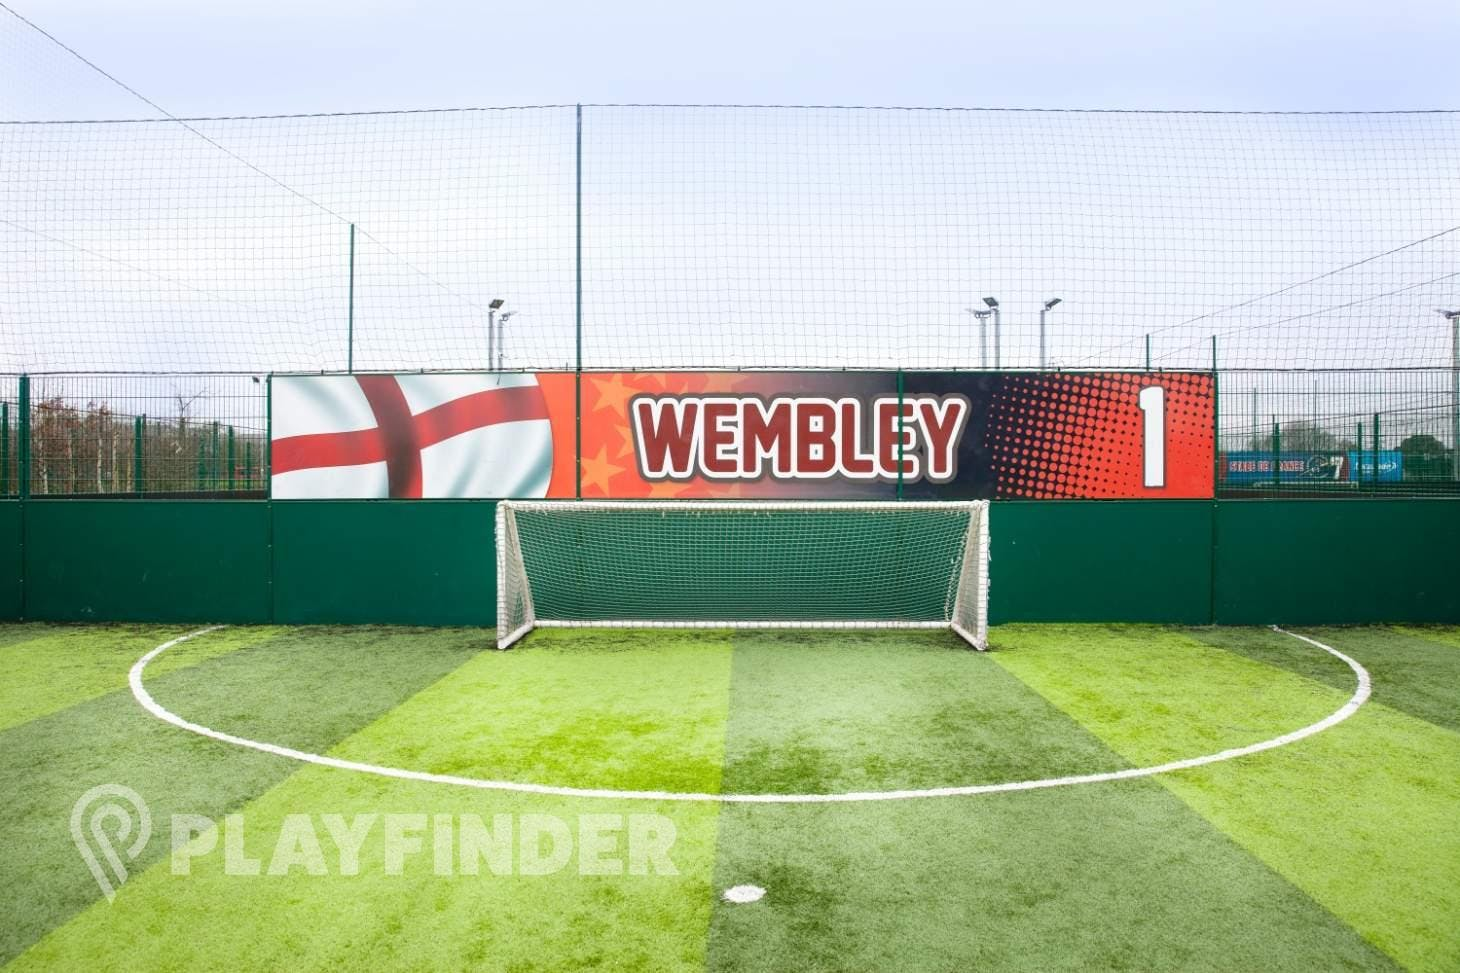 Goals Norwich 5 a side | 3G Astroturf football pitch